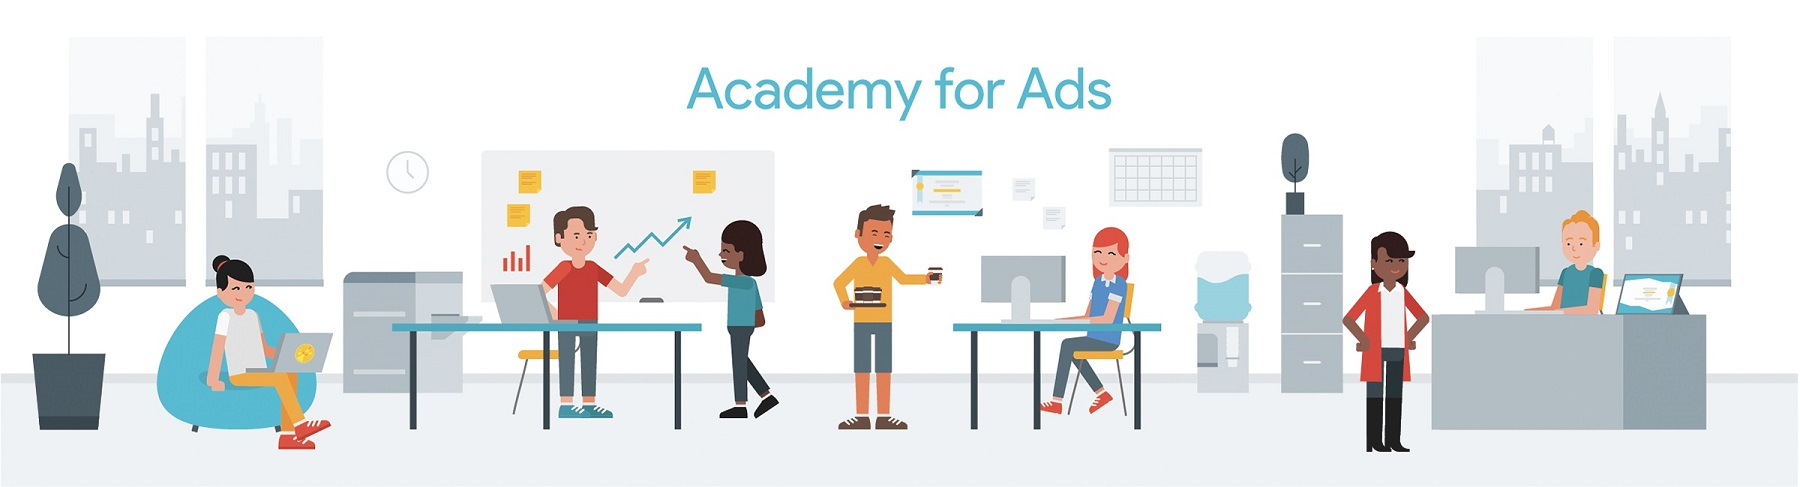 oficina academy for ads